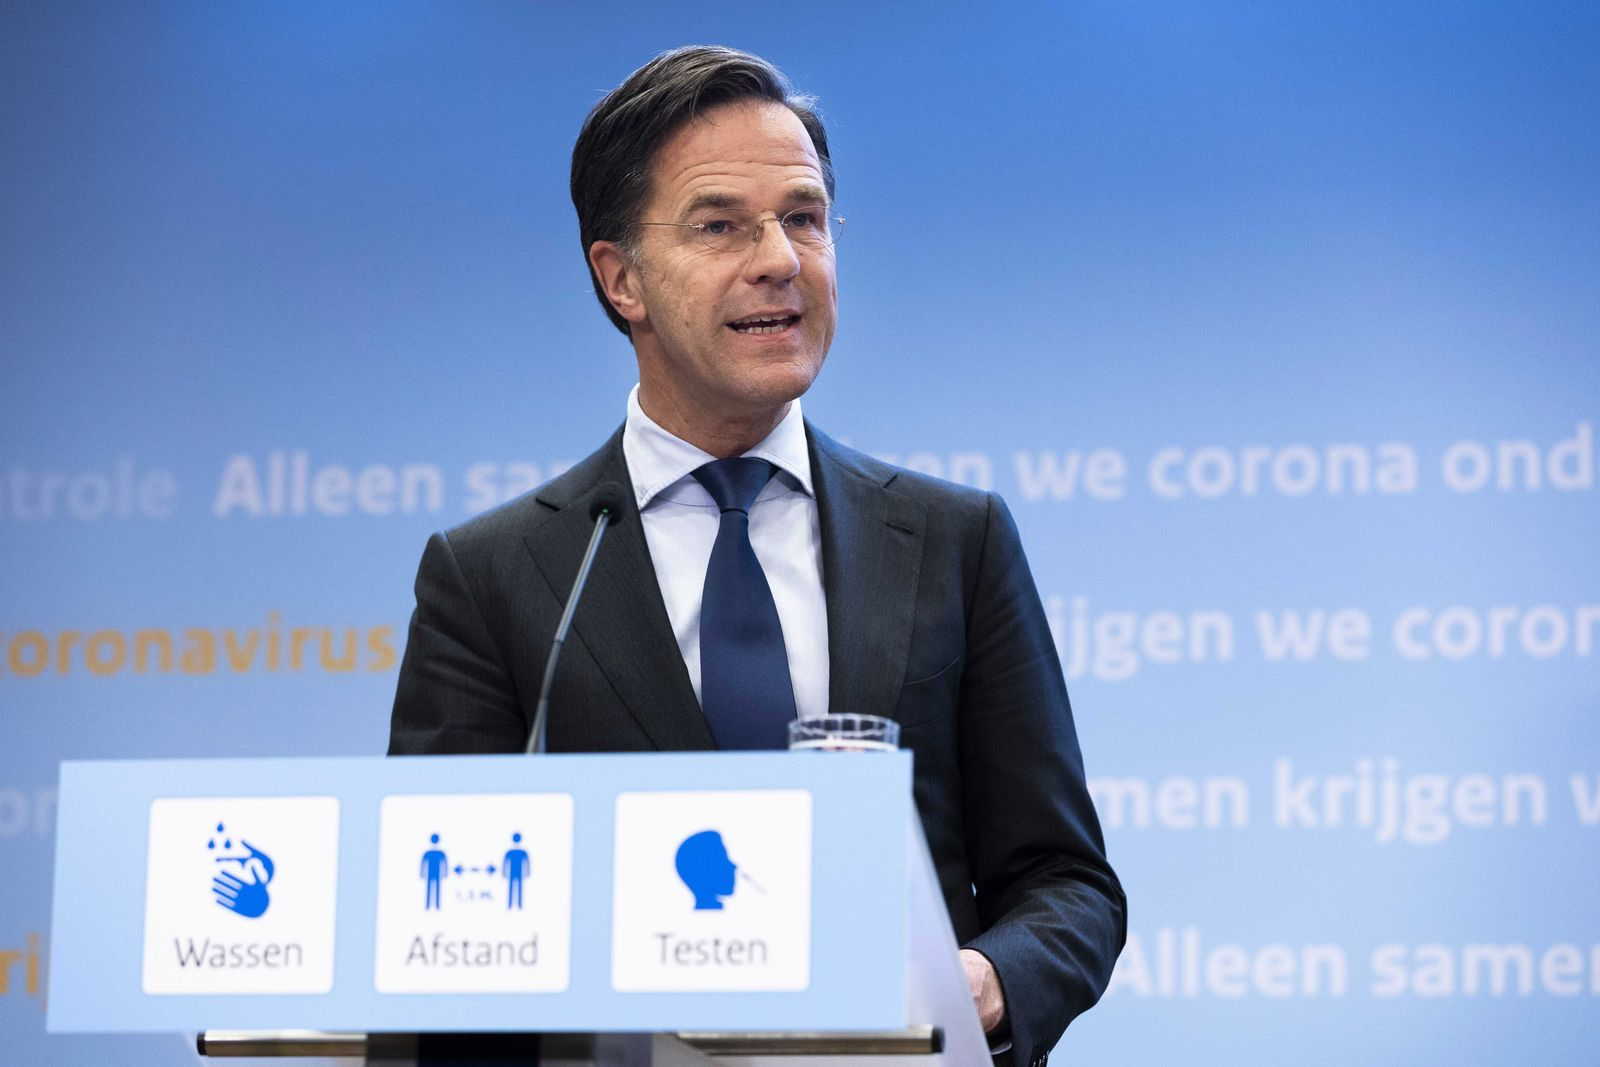 Press conference Rutte and De Jonge about covid-19